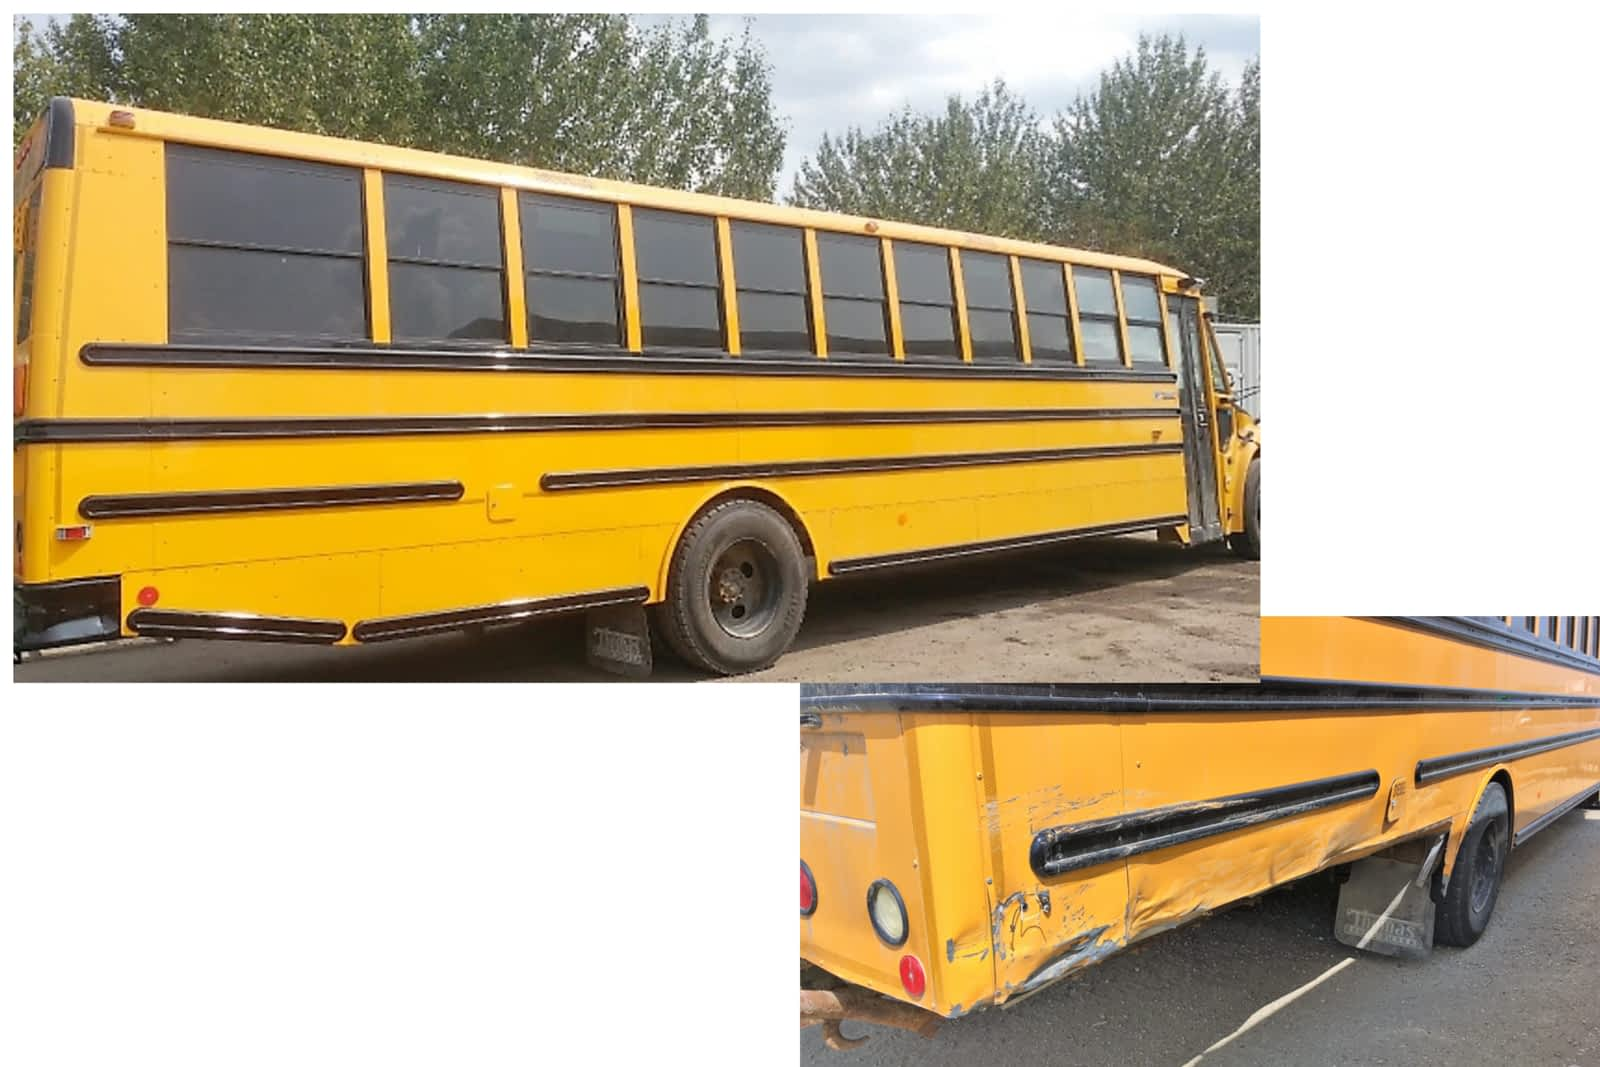 bus before and after